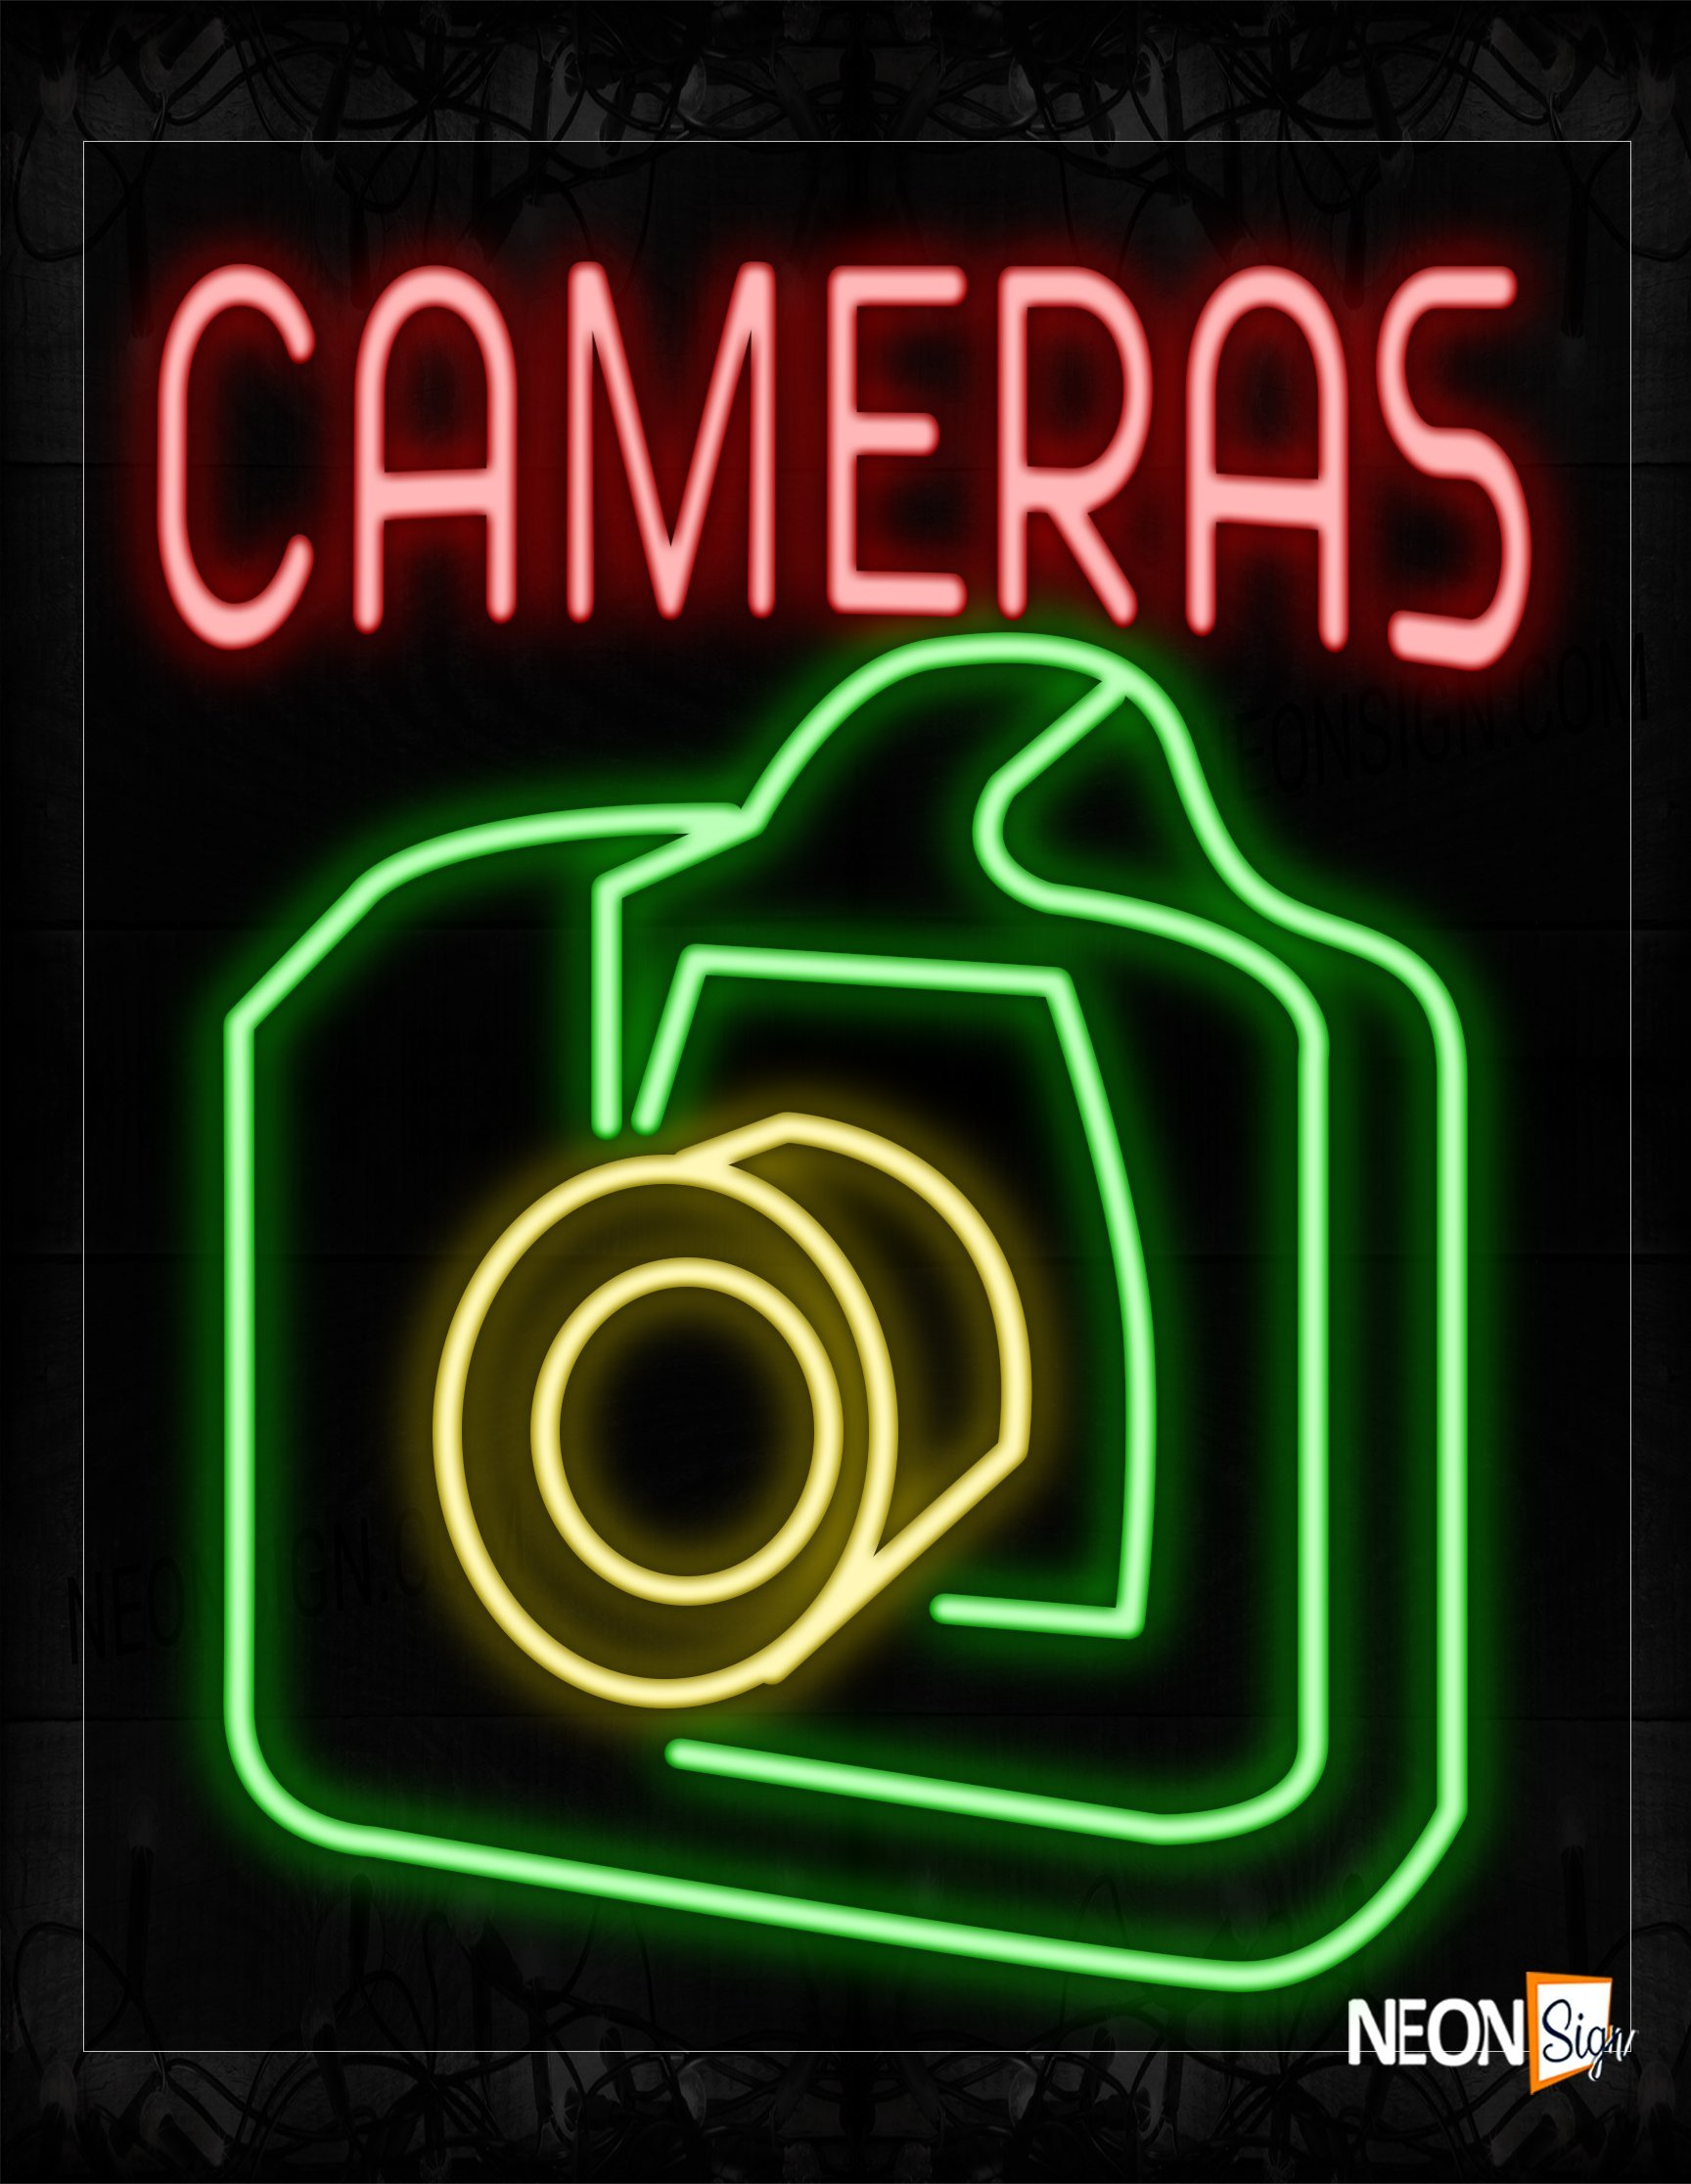 Image of 10456 Cameras With Logo Neon Signs_24x31 Black Backing